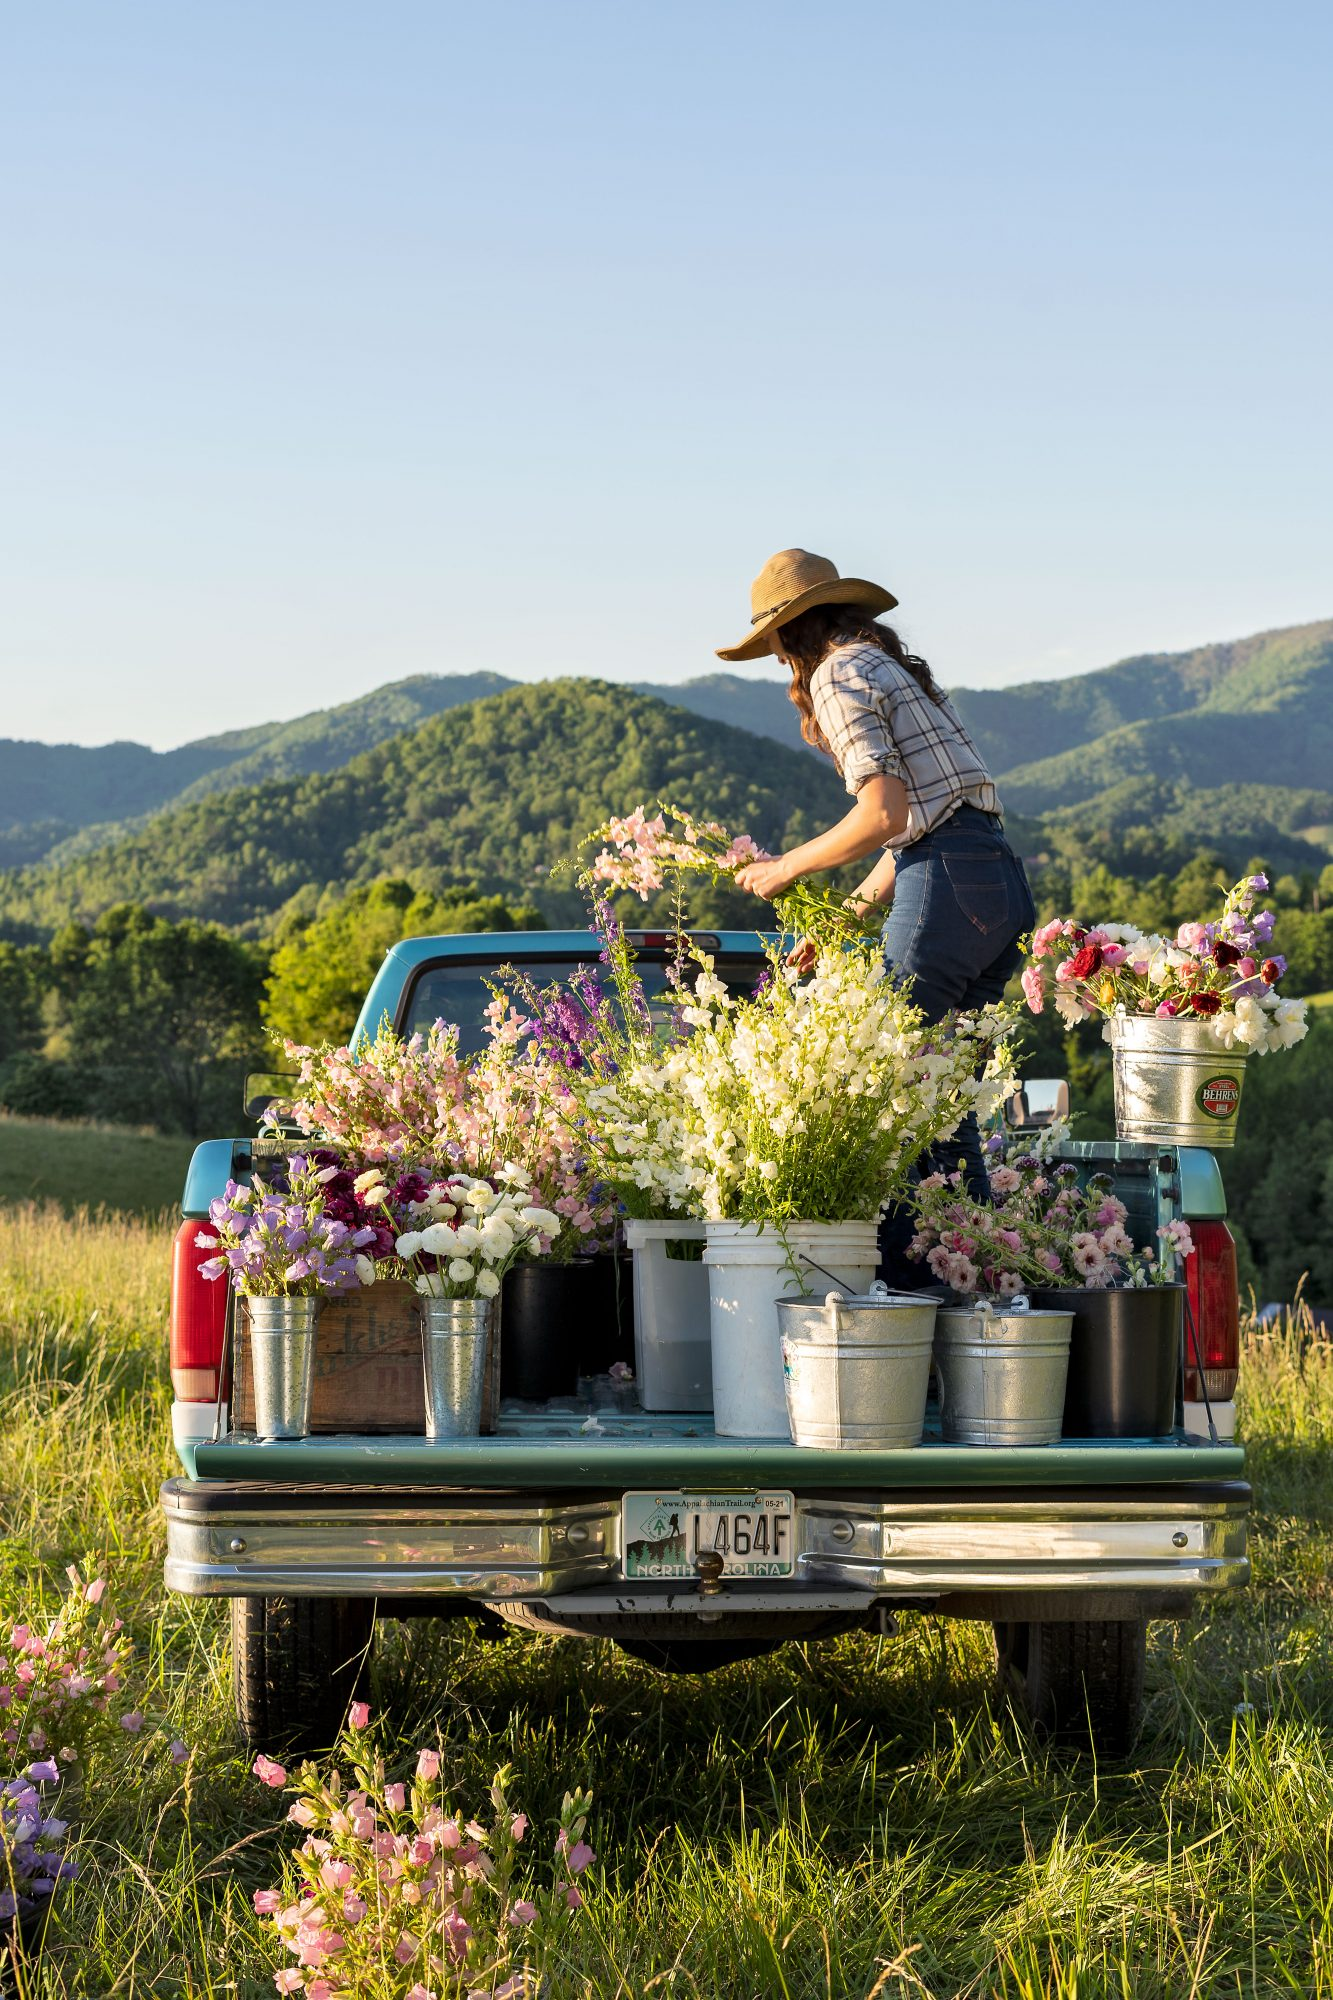 Emily Copus of Carolina Flowers farm on her truck bed